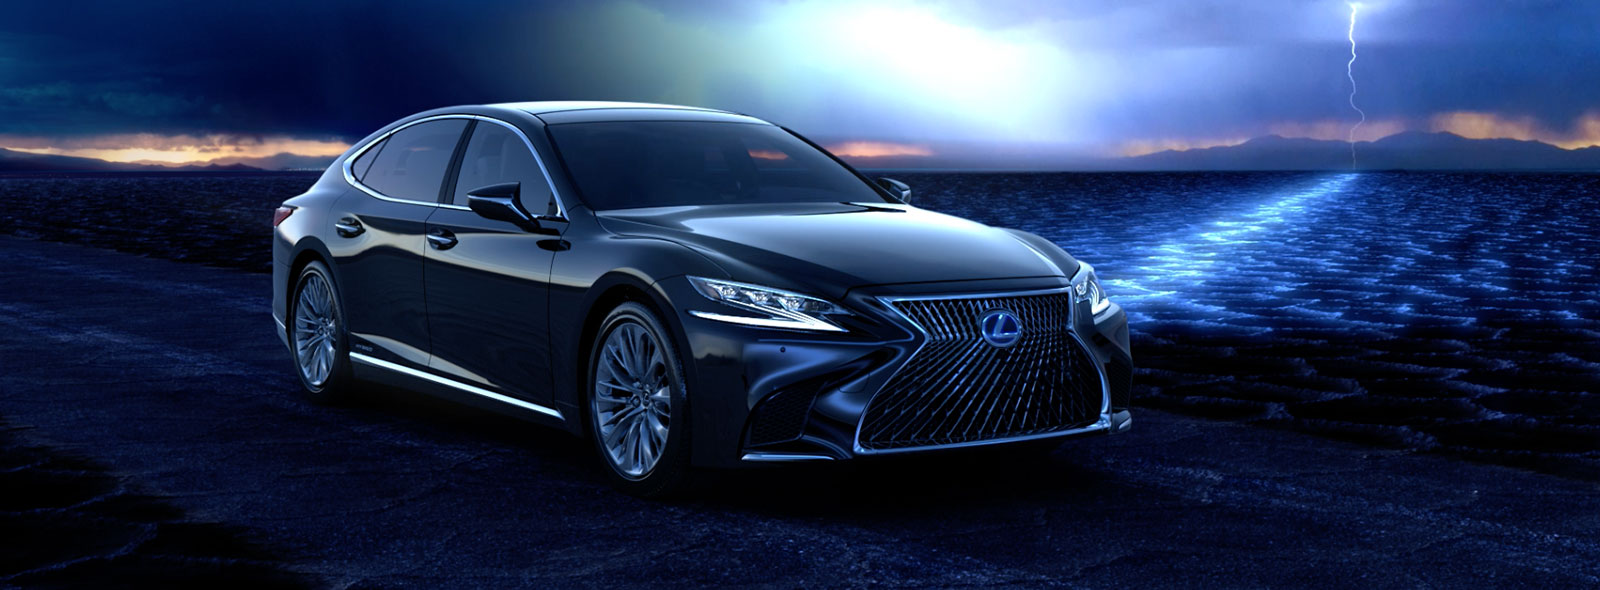 2018 Lexus LS Geneva Launch Video